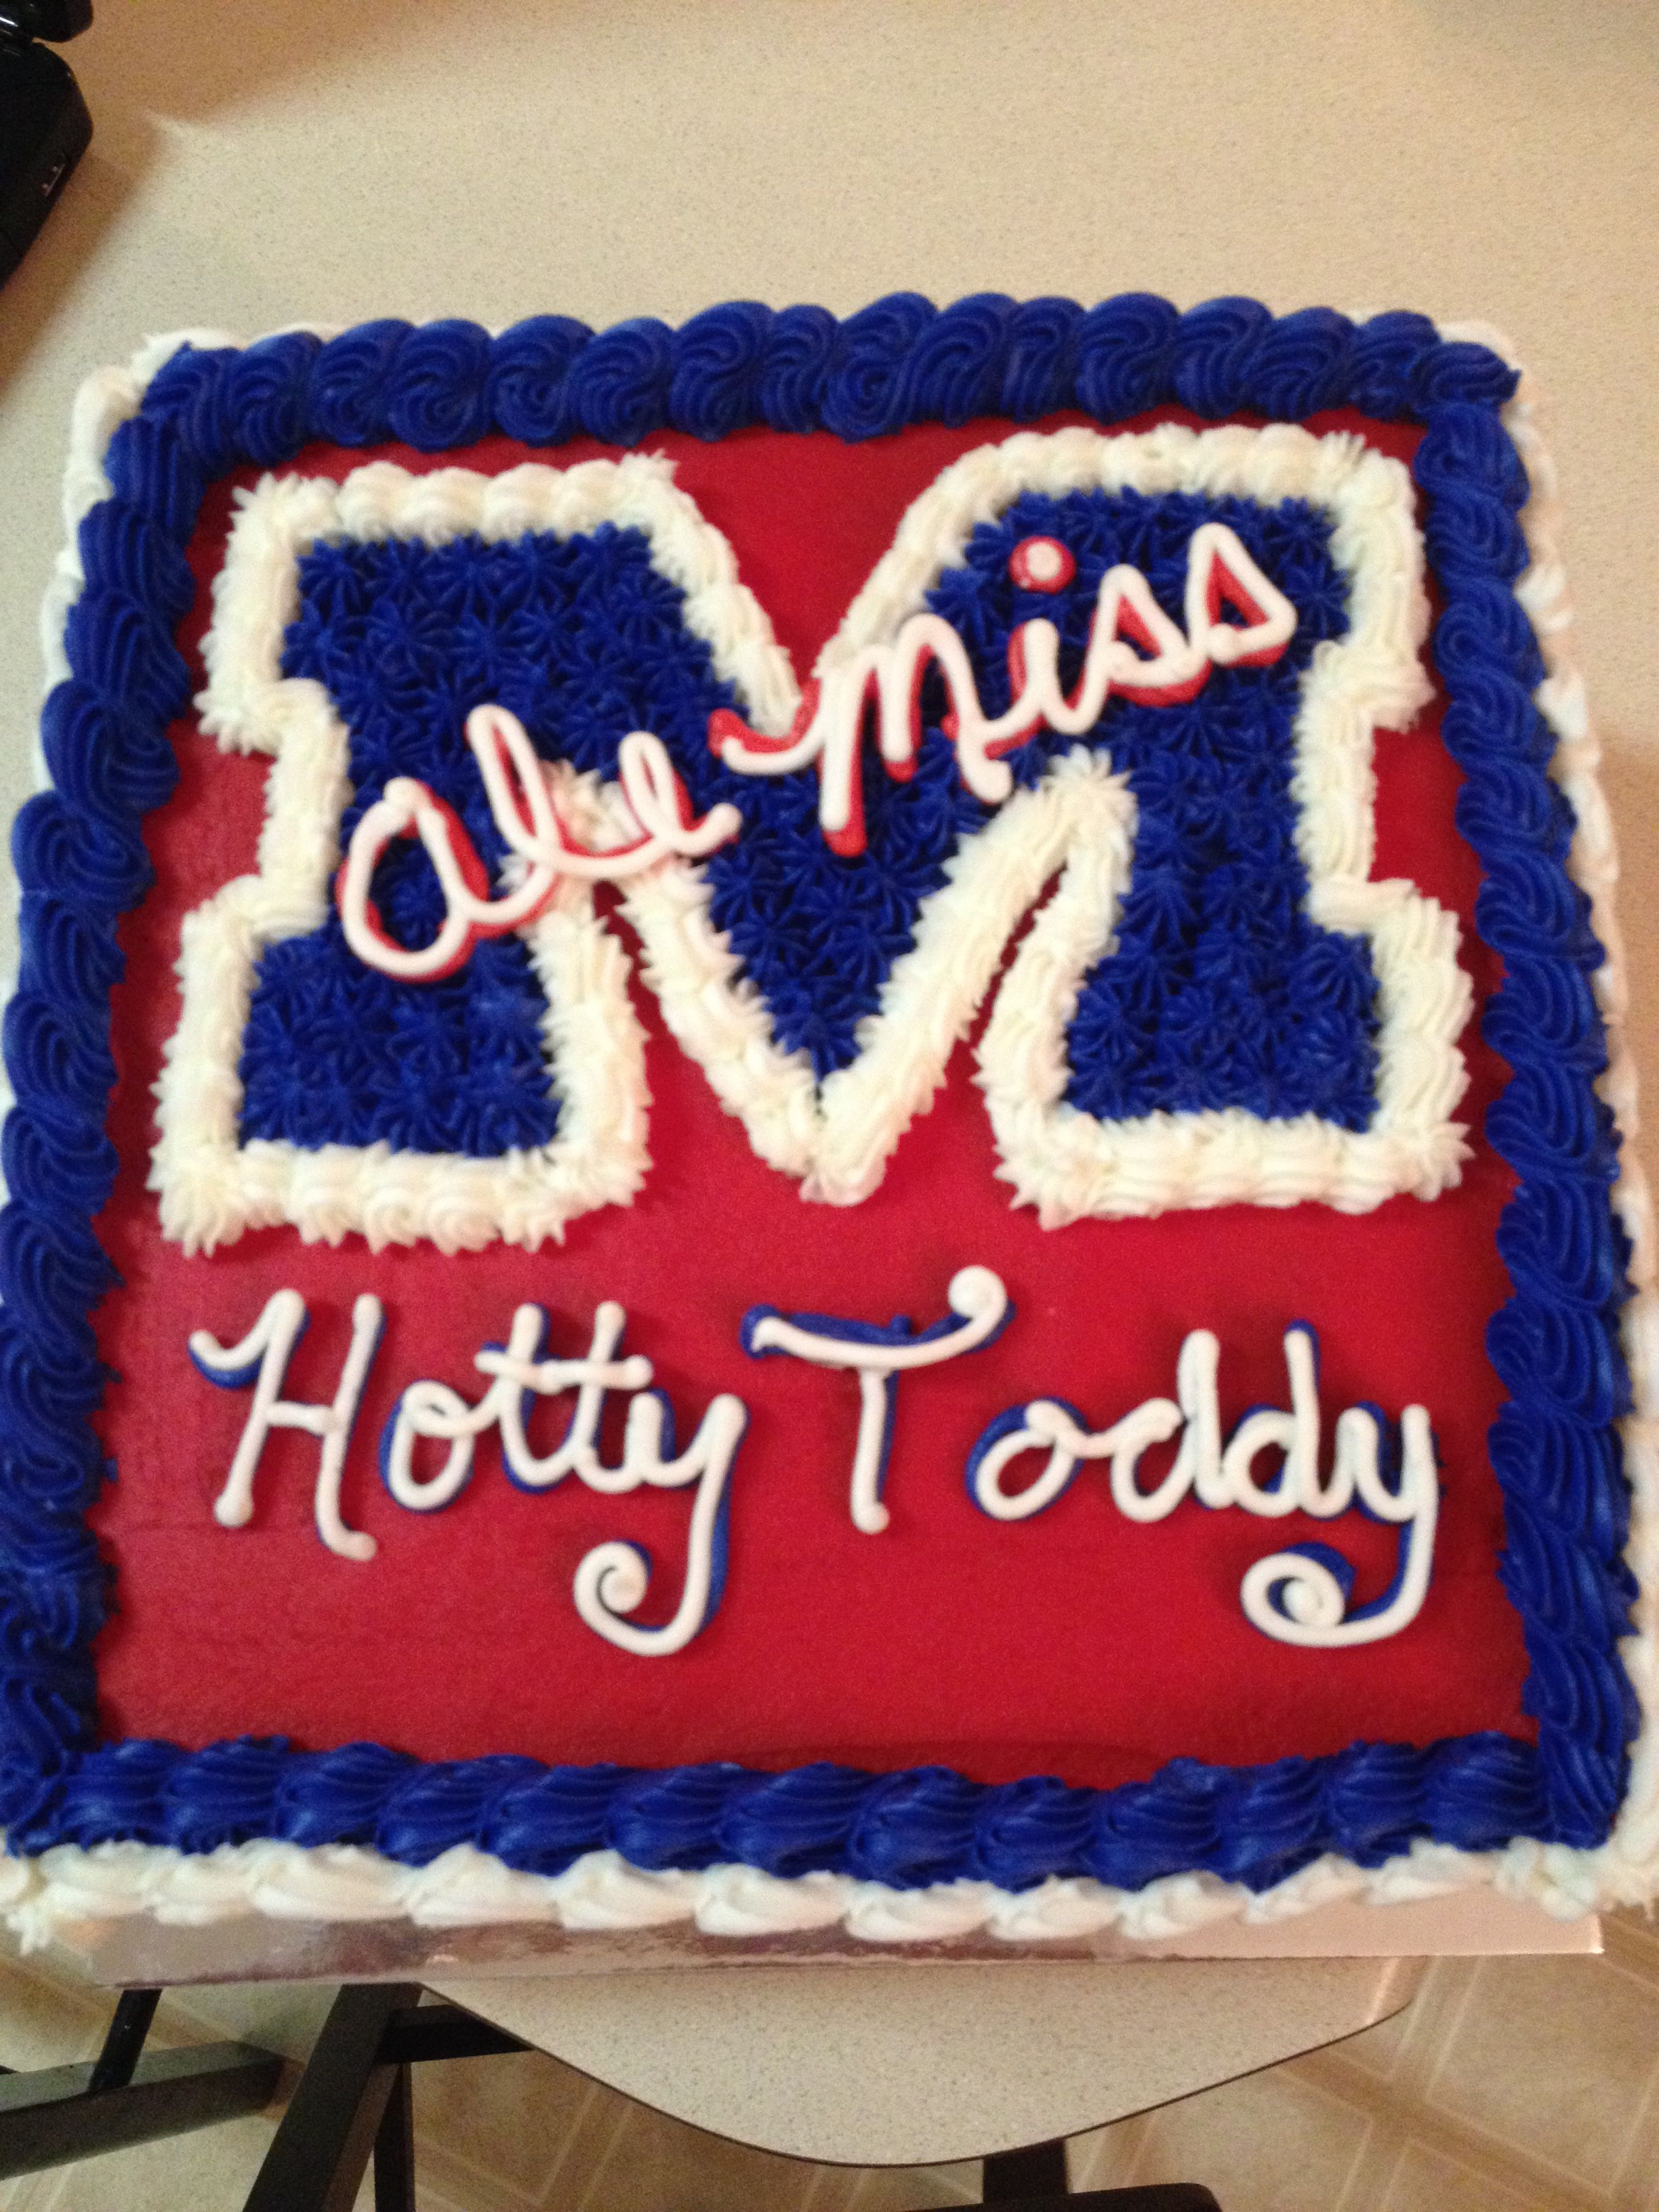 Incredible Ole Miss Cake Miss Cake Brave Cakes Hotty Toddy Funny Birthday Cards Online Fluifree Goldxyz